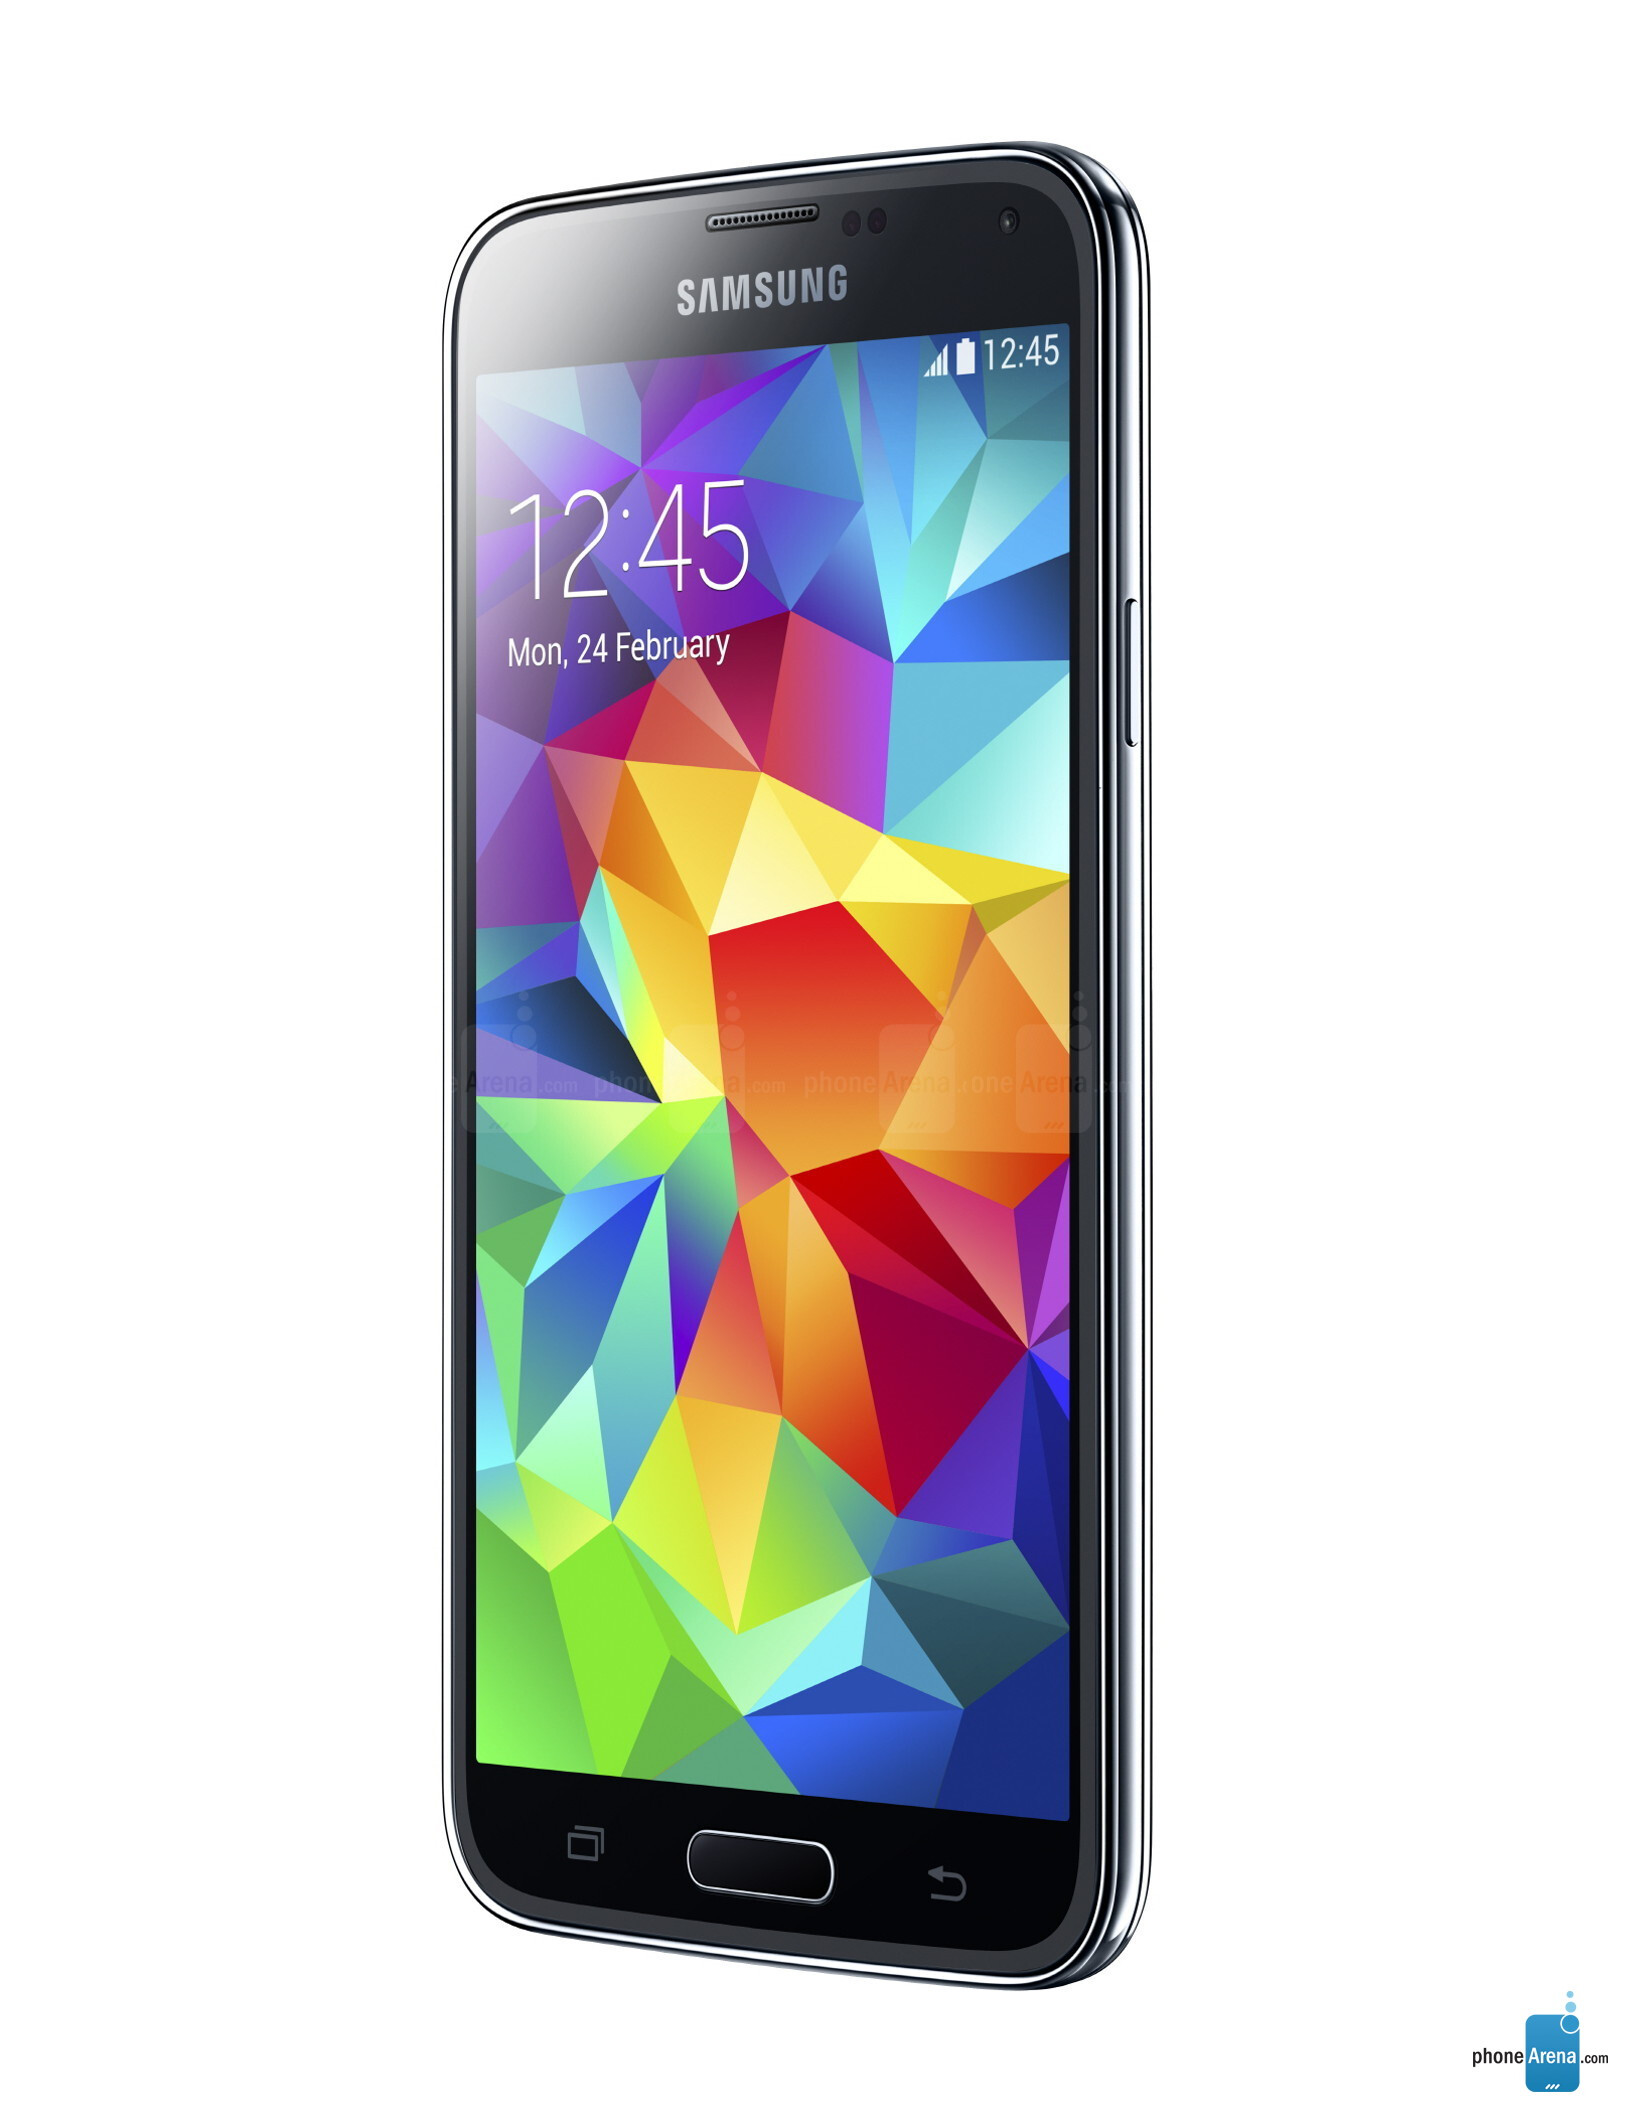 samsung galaxy s5 specs. Black Bedroom Furniture Sets. Home Design Ideas